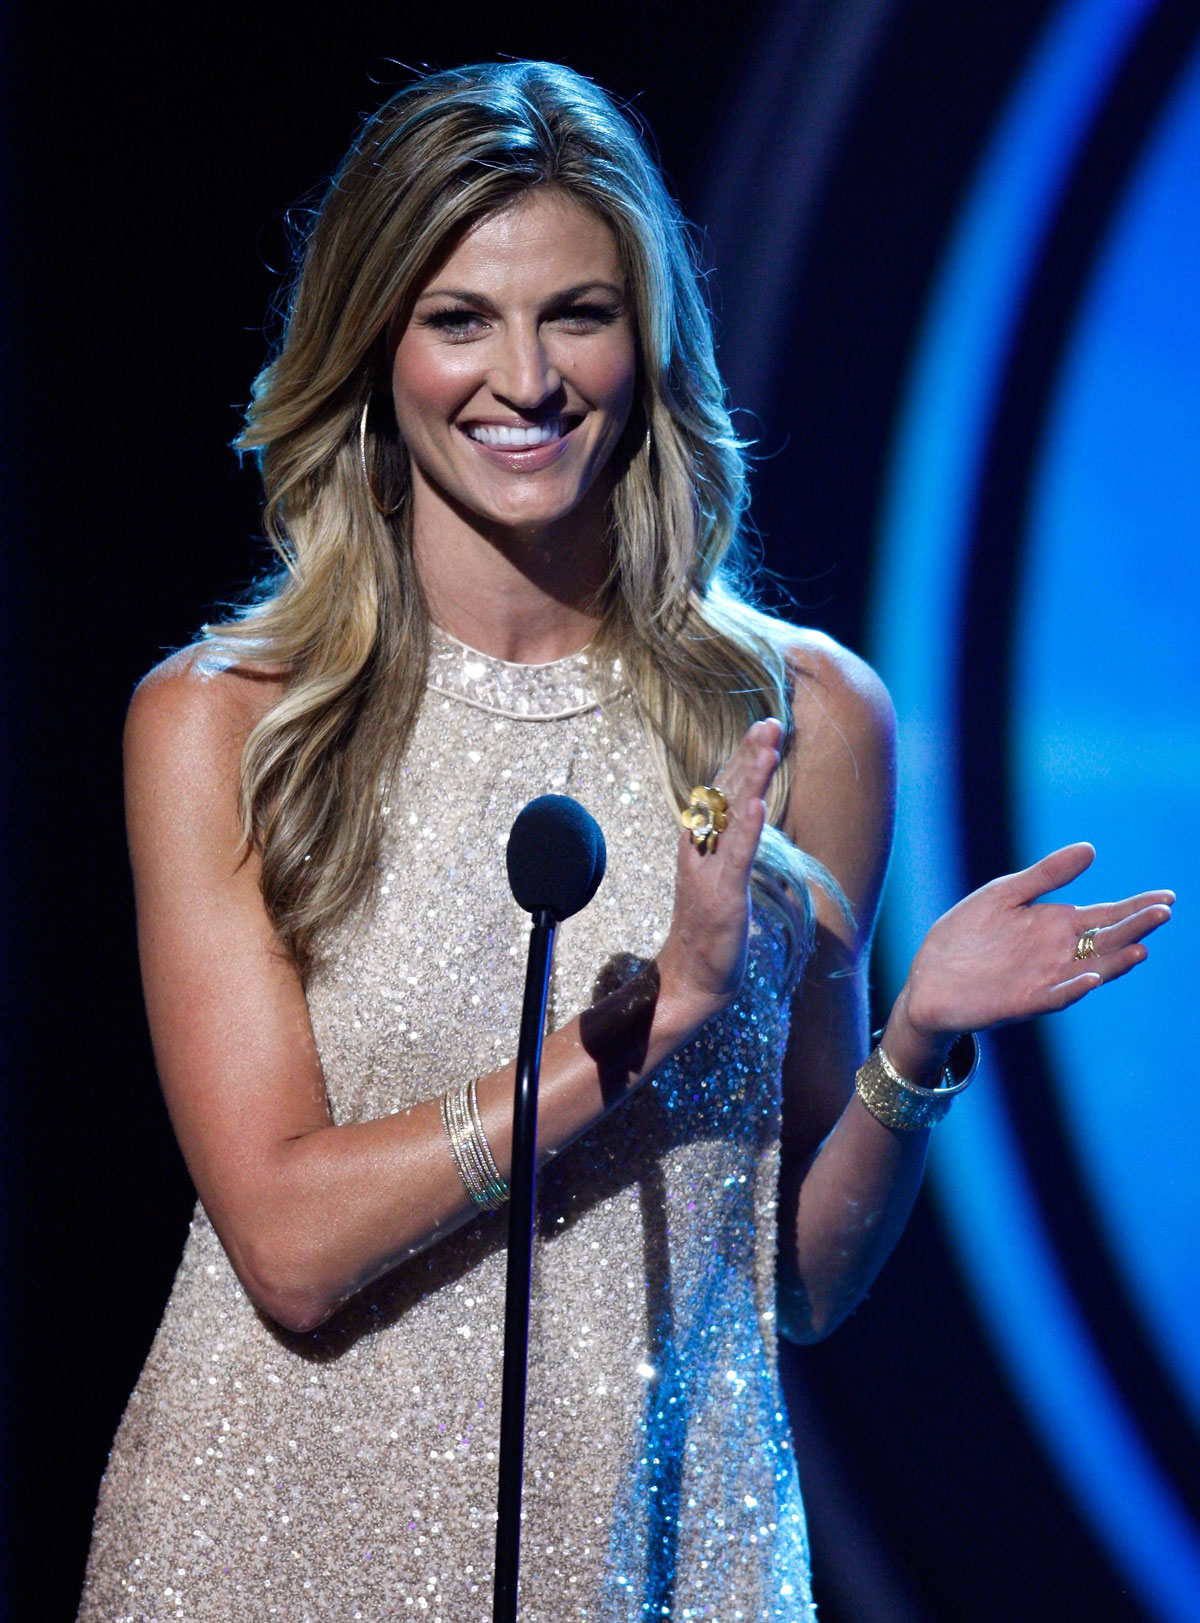 ERIN ANDREWS at 2012 NHL Awards in Las VegasErin Andrews Nhl Awards